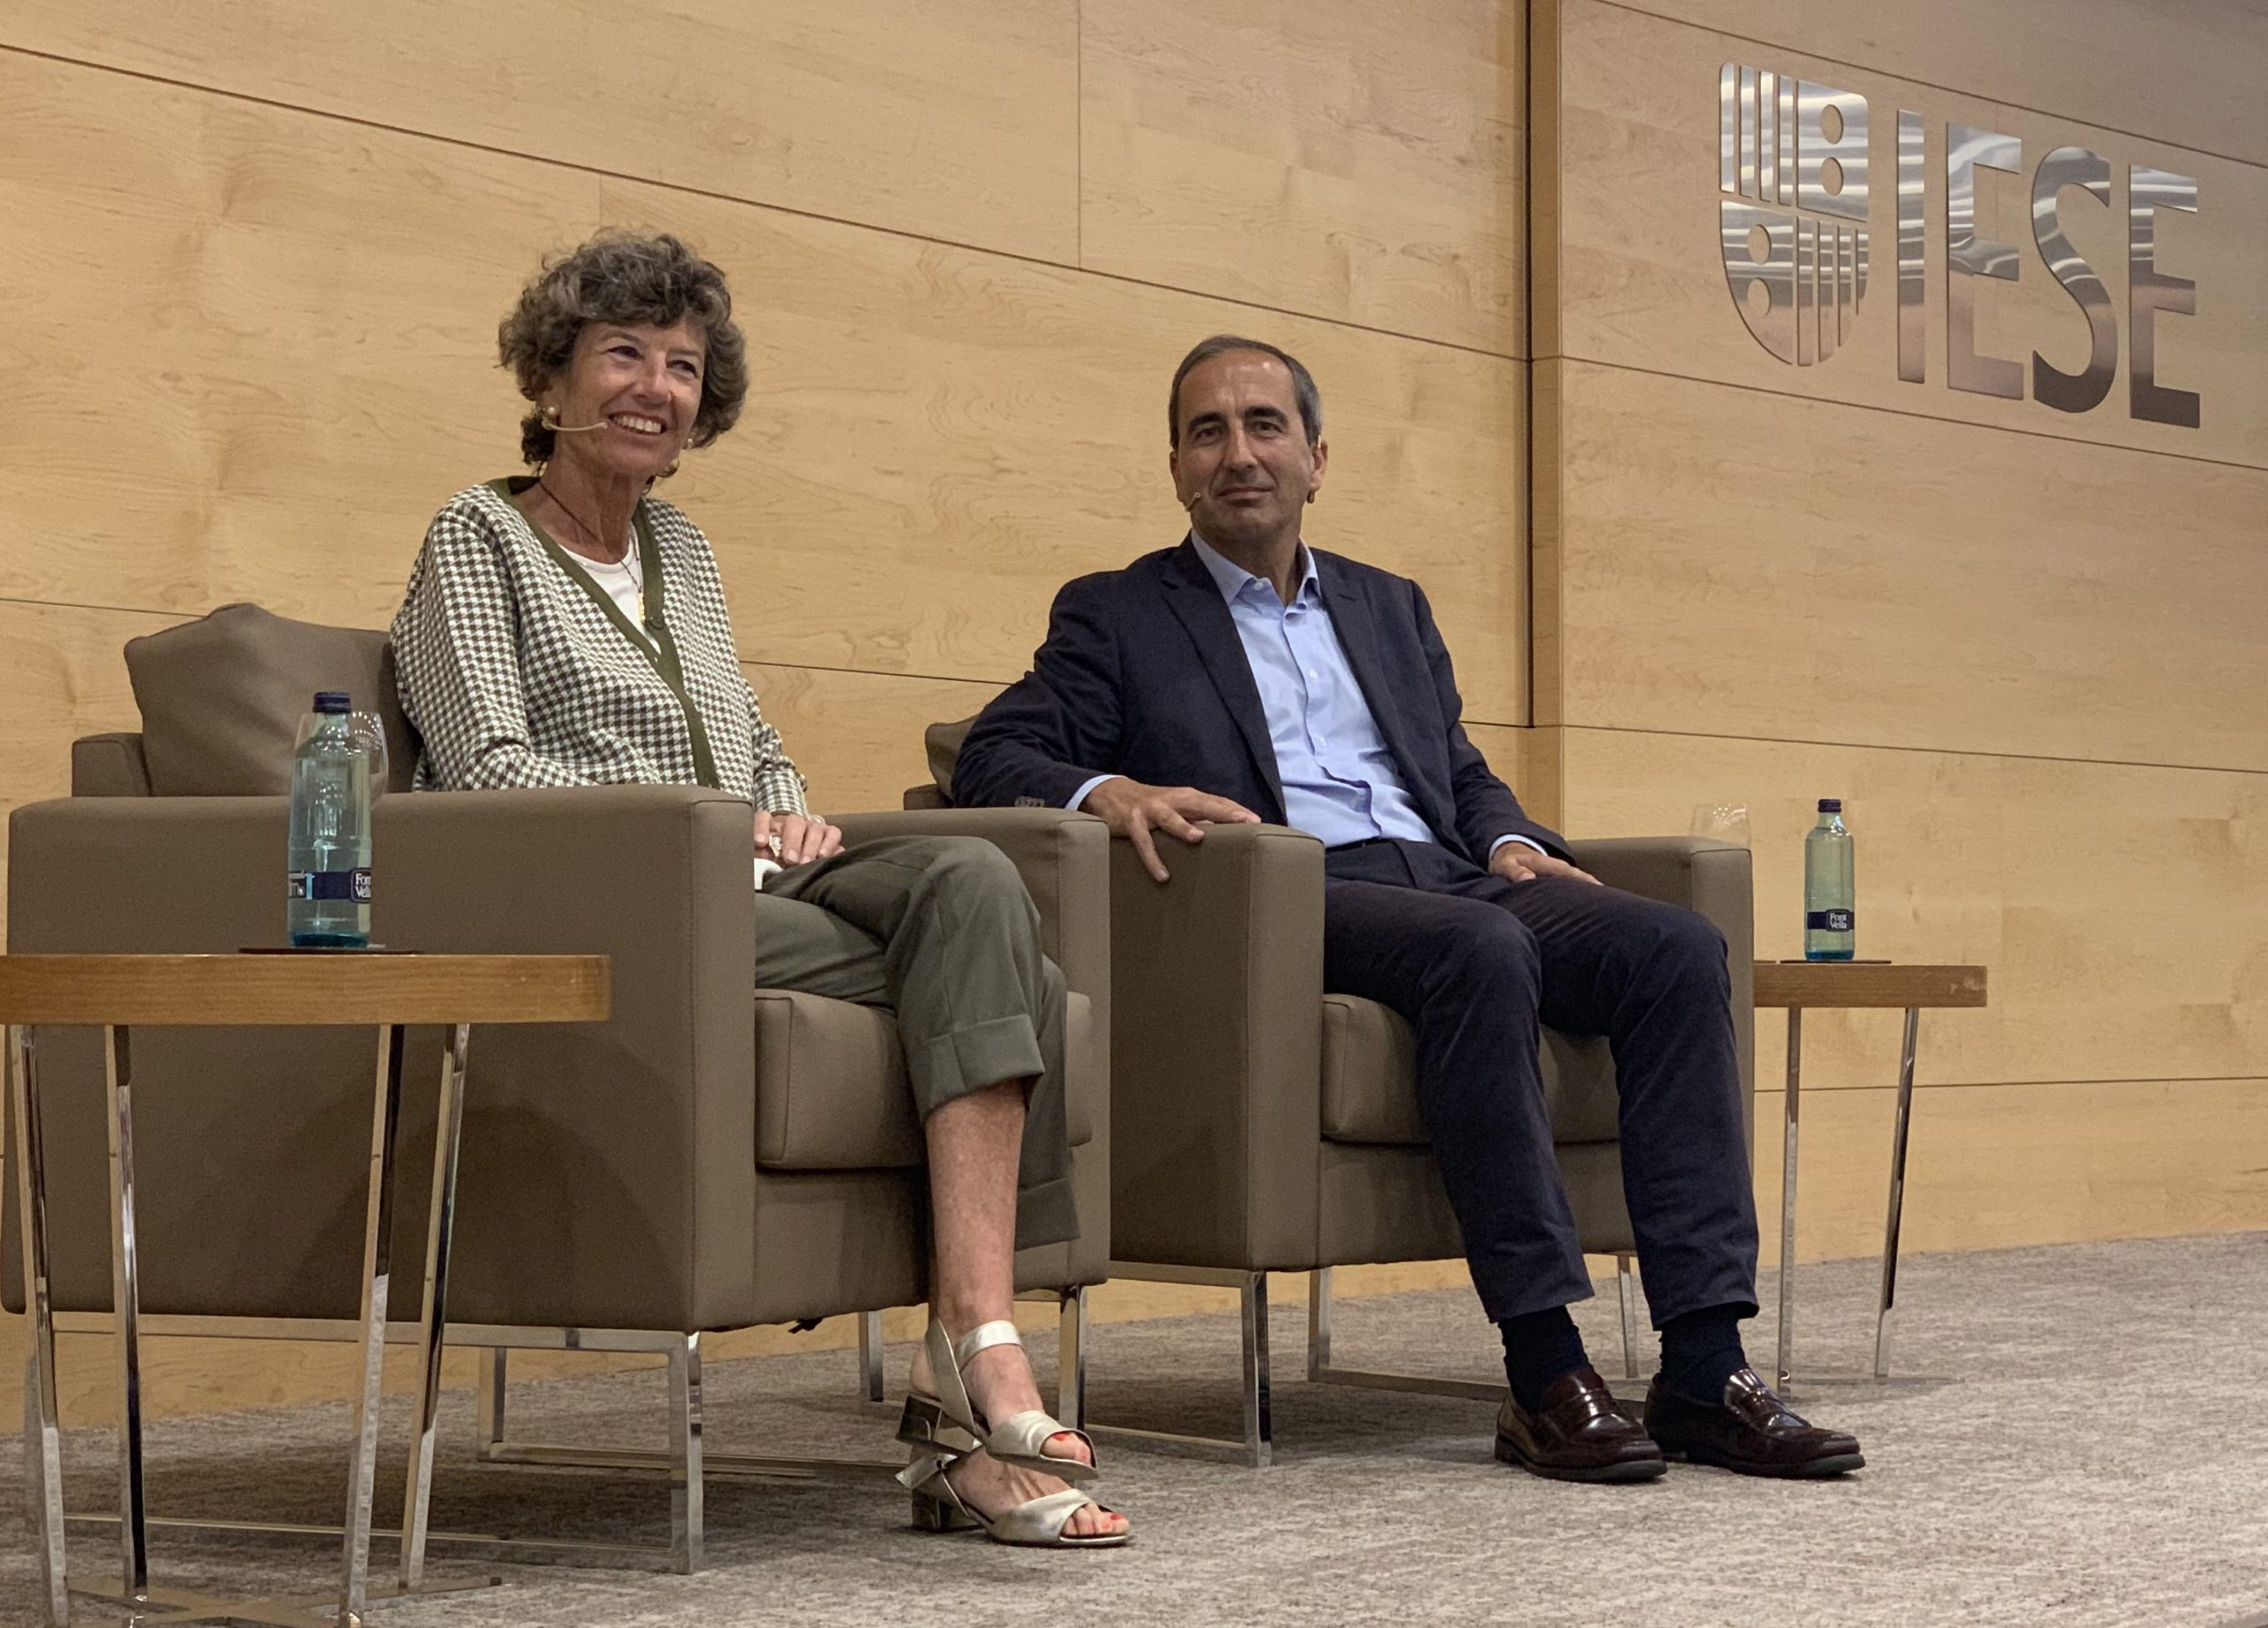 Dr. Elena Barraquer and the rector of the University of Navarra participate in a colloquium at IESE